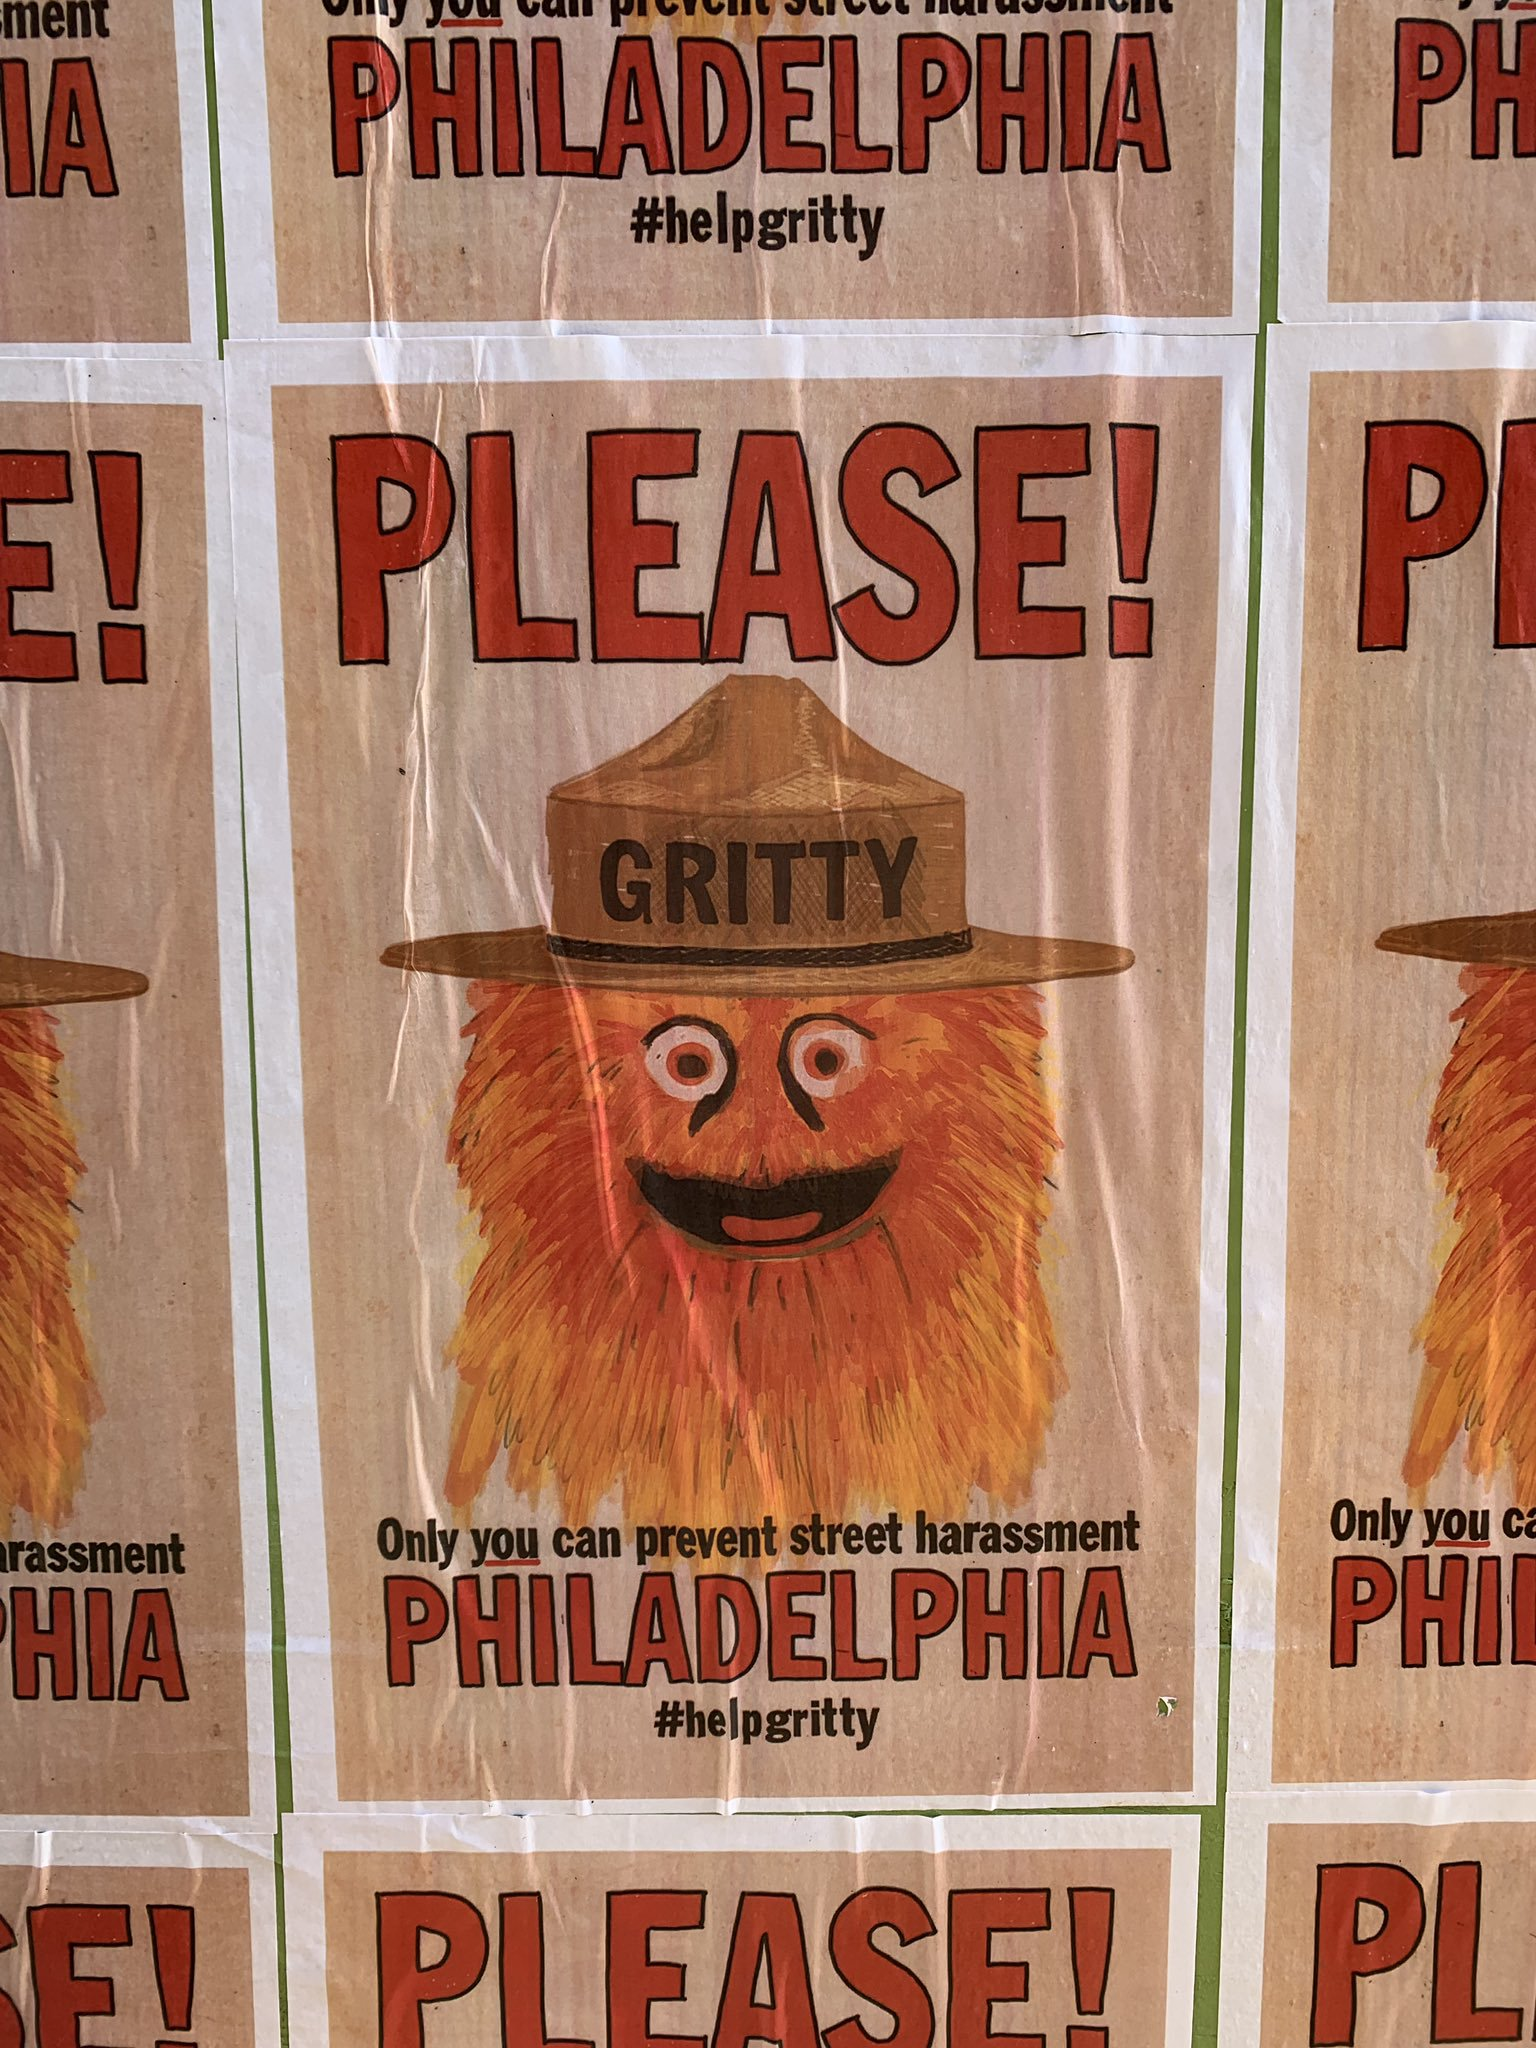 Gritty anti-street harassment photos are nice, but we need